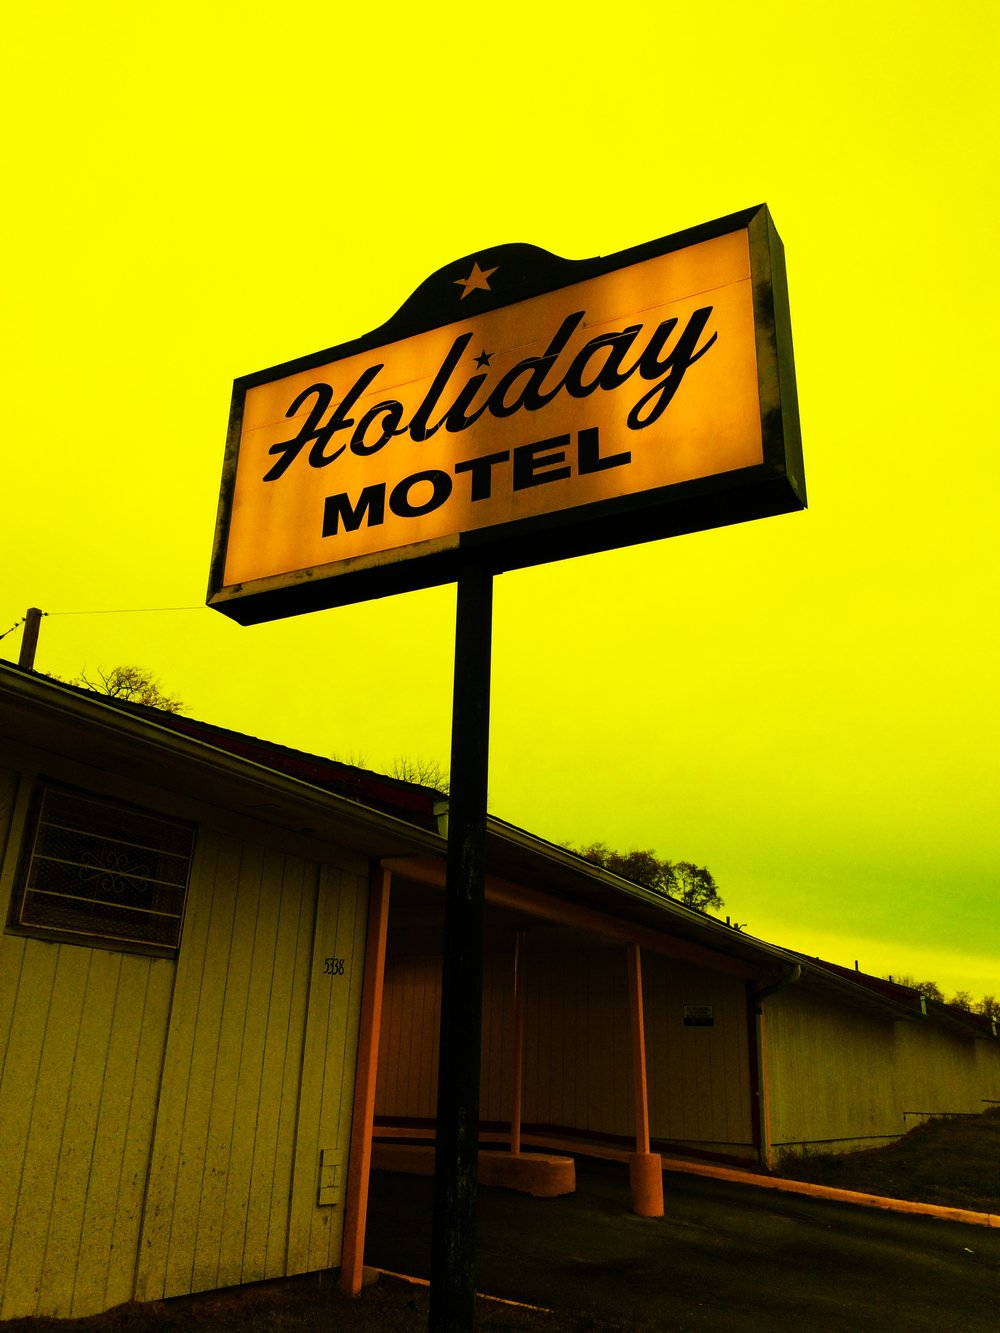 The Holiday Motel, Prospect and 53rd in Kansas City, MO.